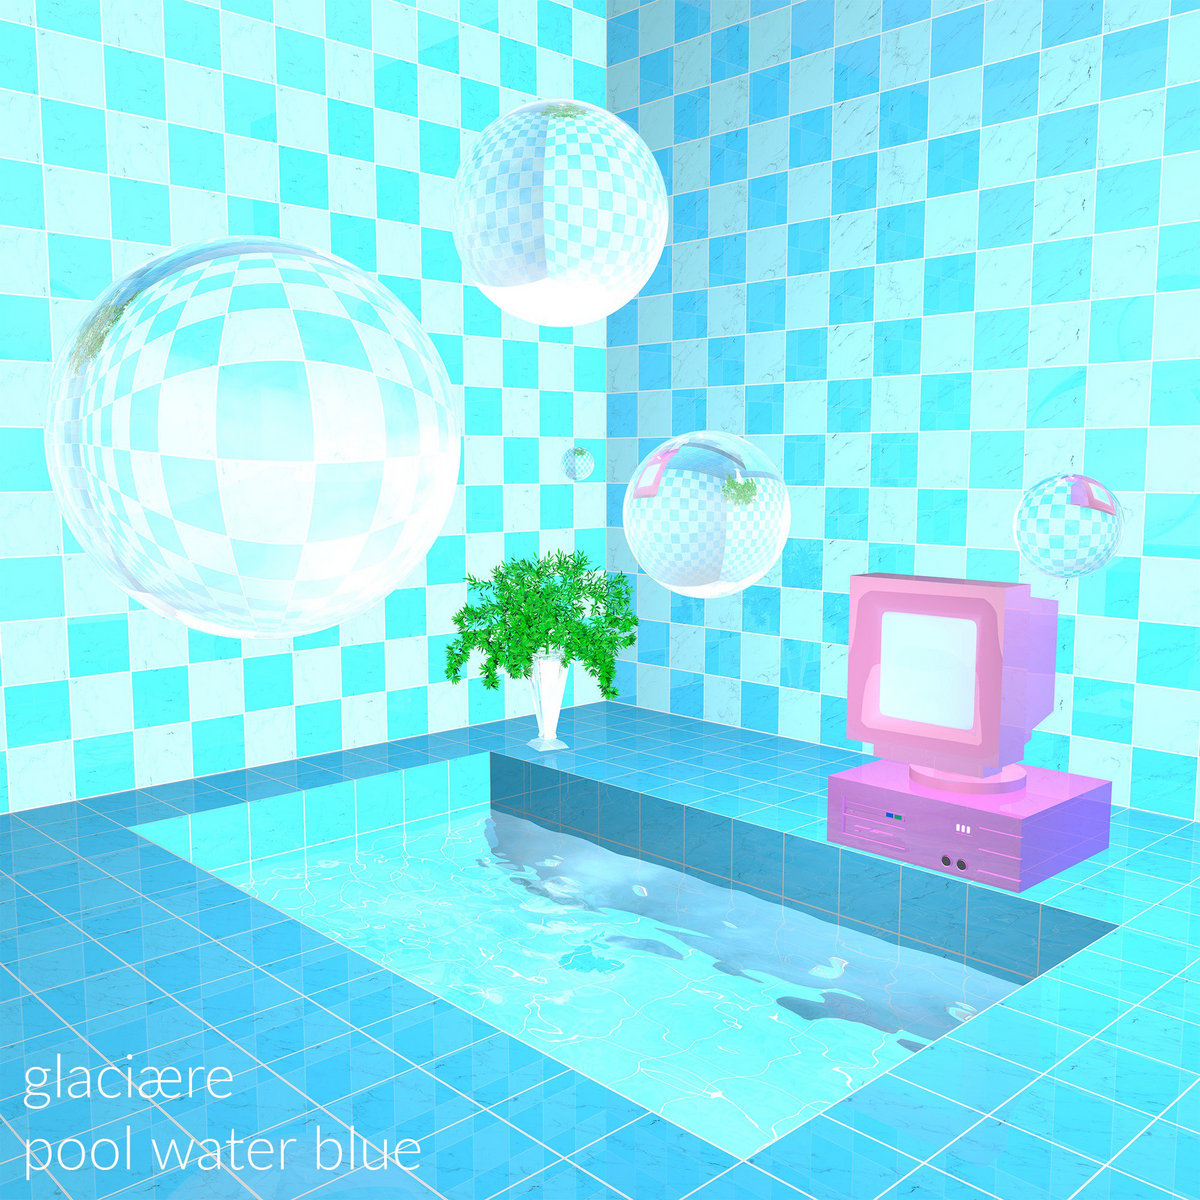 pool water. From Pool Water Blue By Glaciære